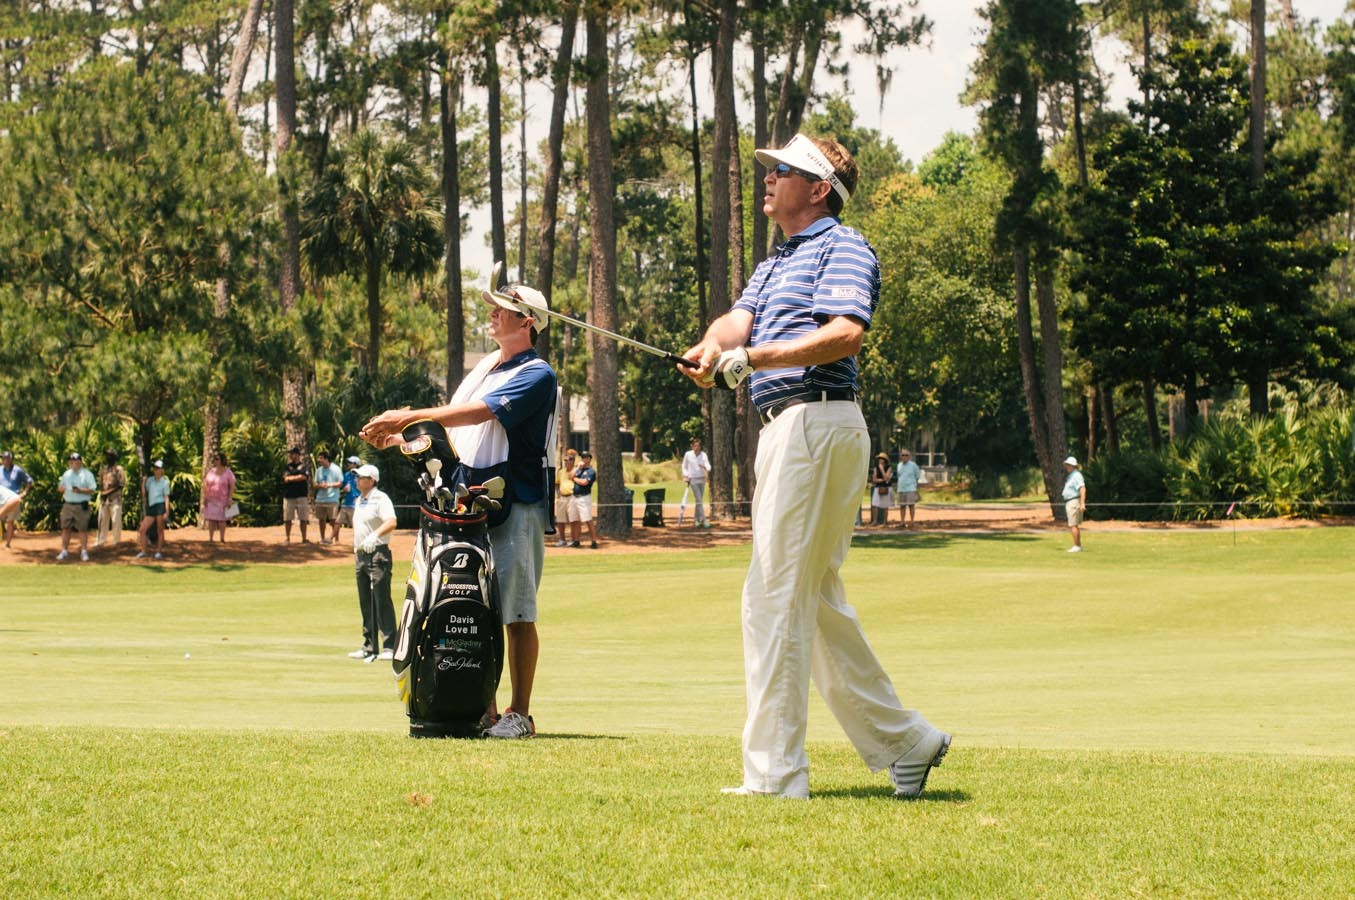 Davis Love III takes a shot on the 11th fairway.